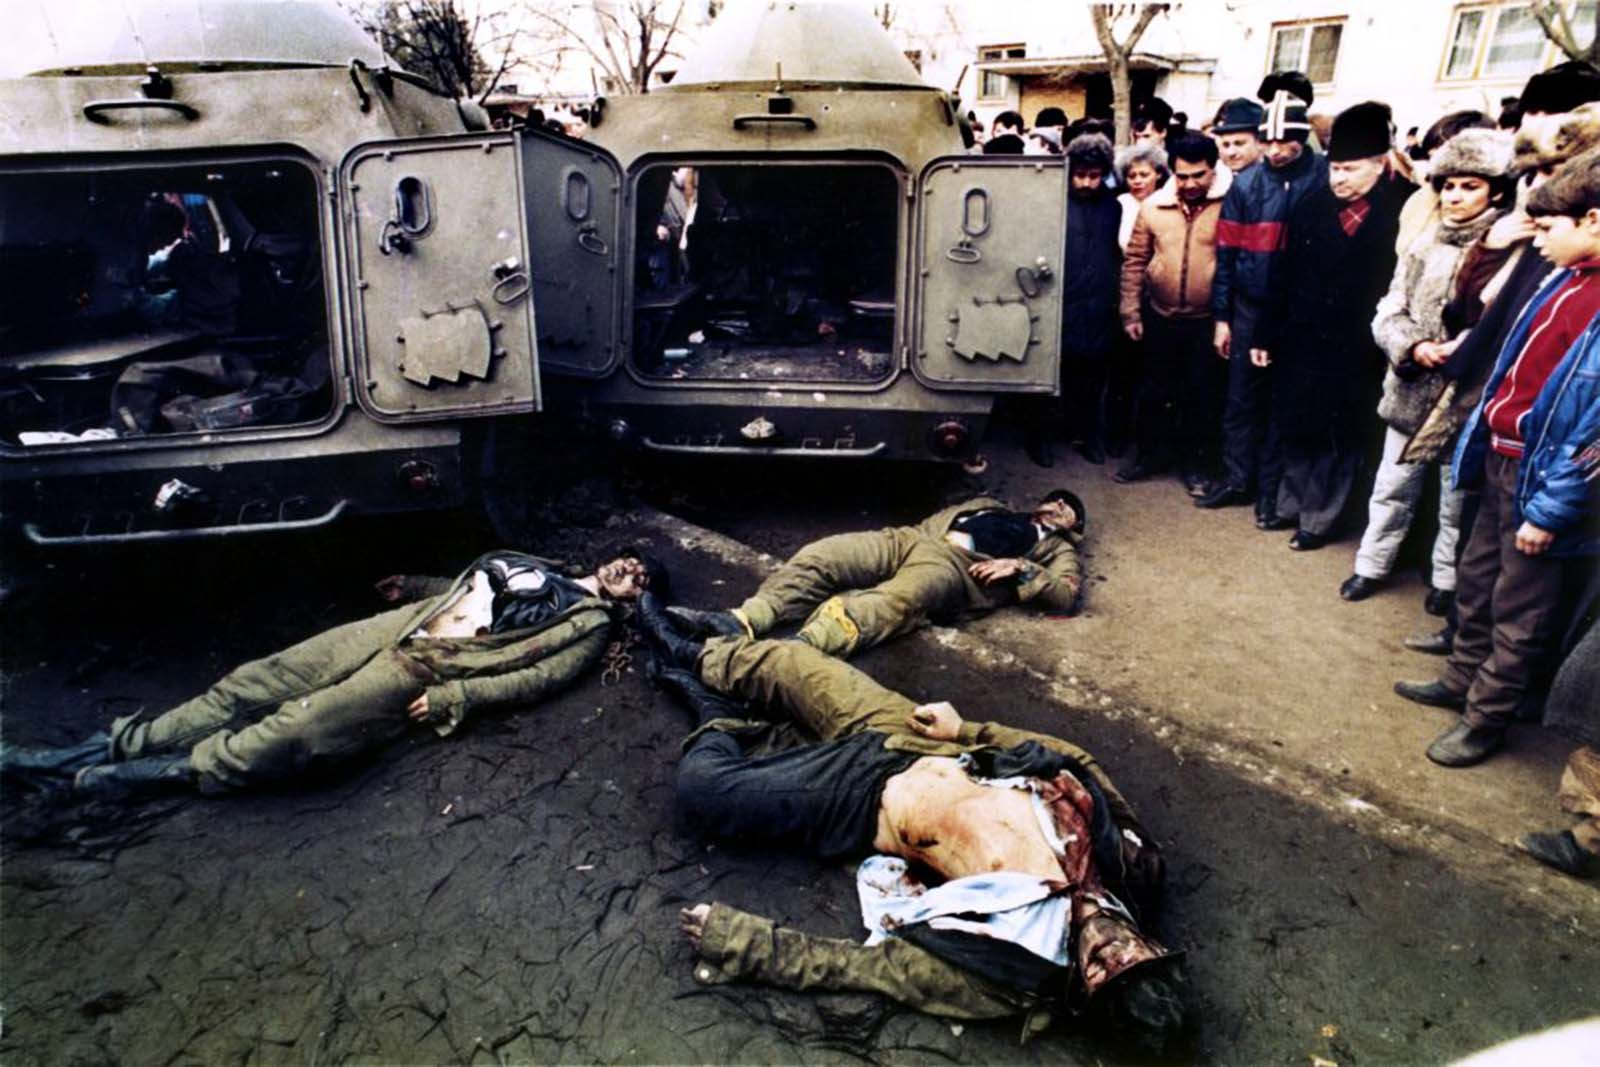 Members of special troops lie dead in front of their armored vehicles after being shot by the army in the Bucharest suburb of Taberei.